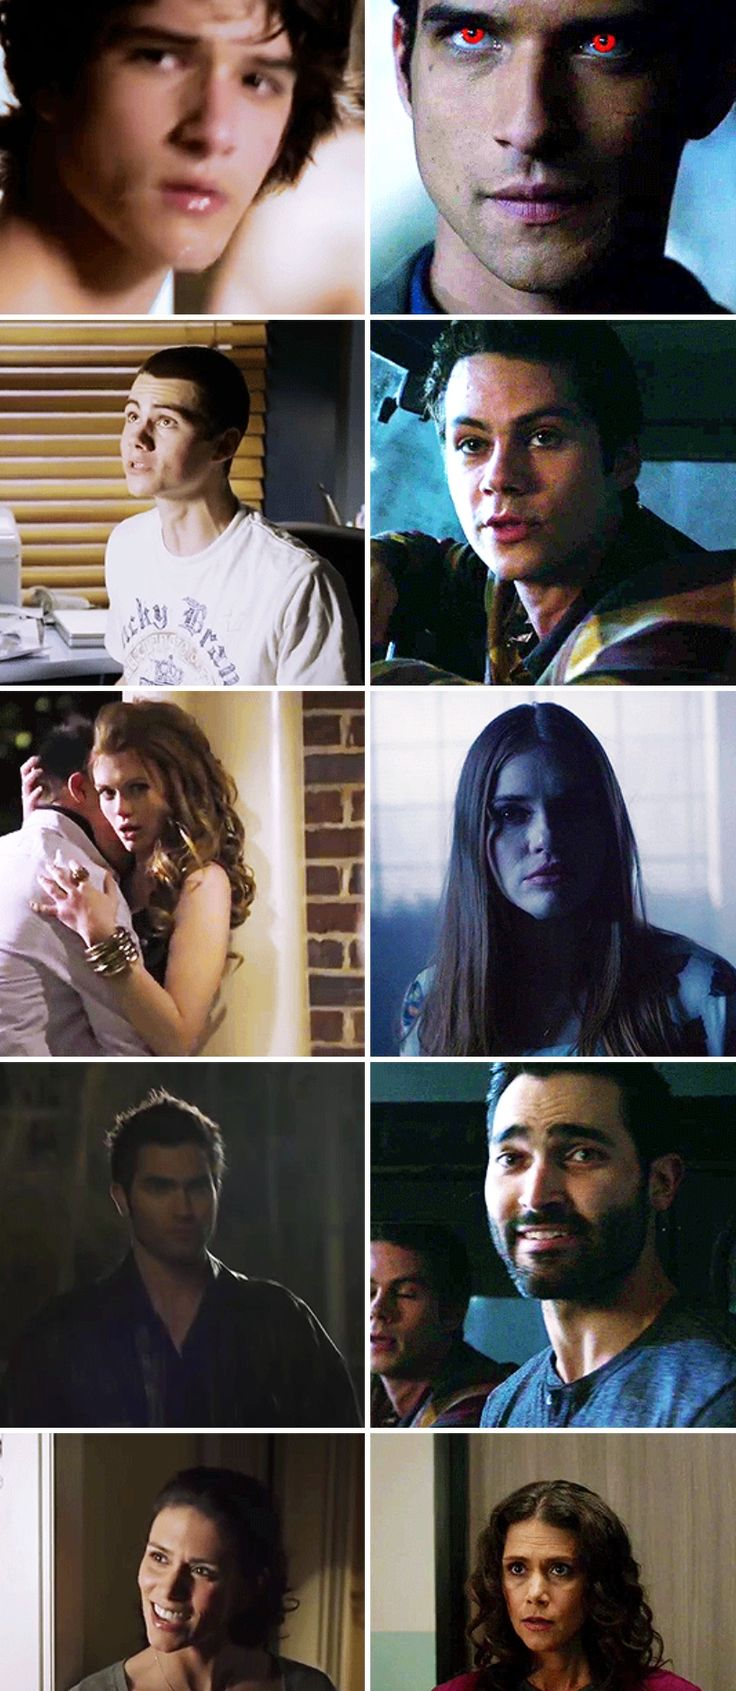 Teen Wolf - the first season and the last season